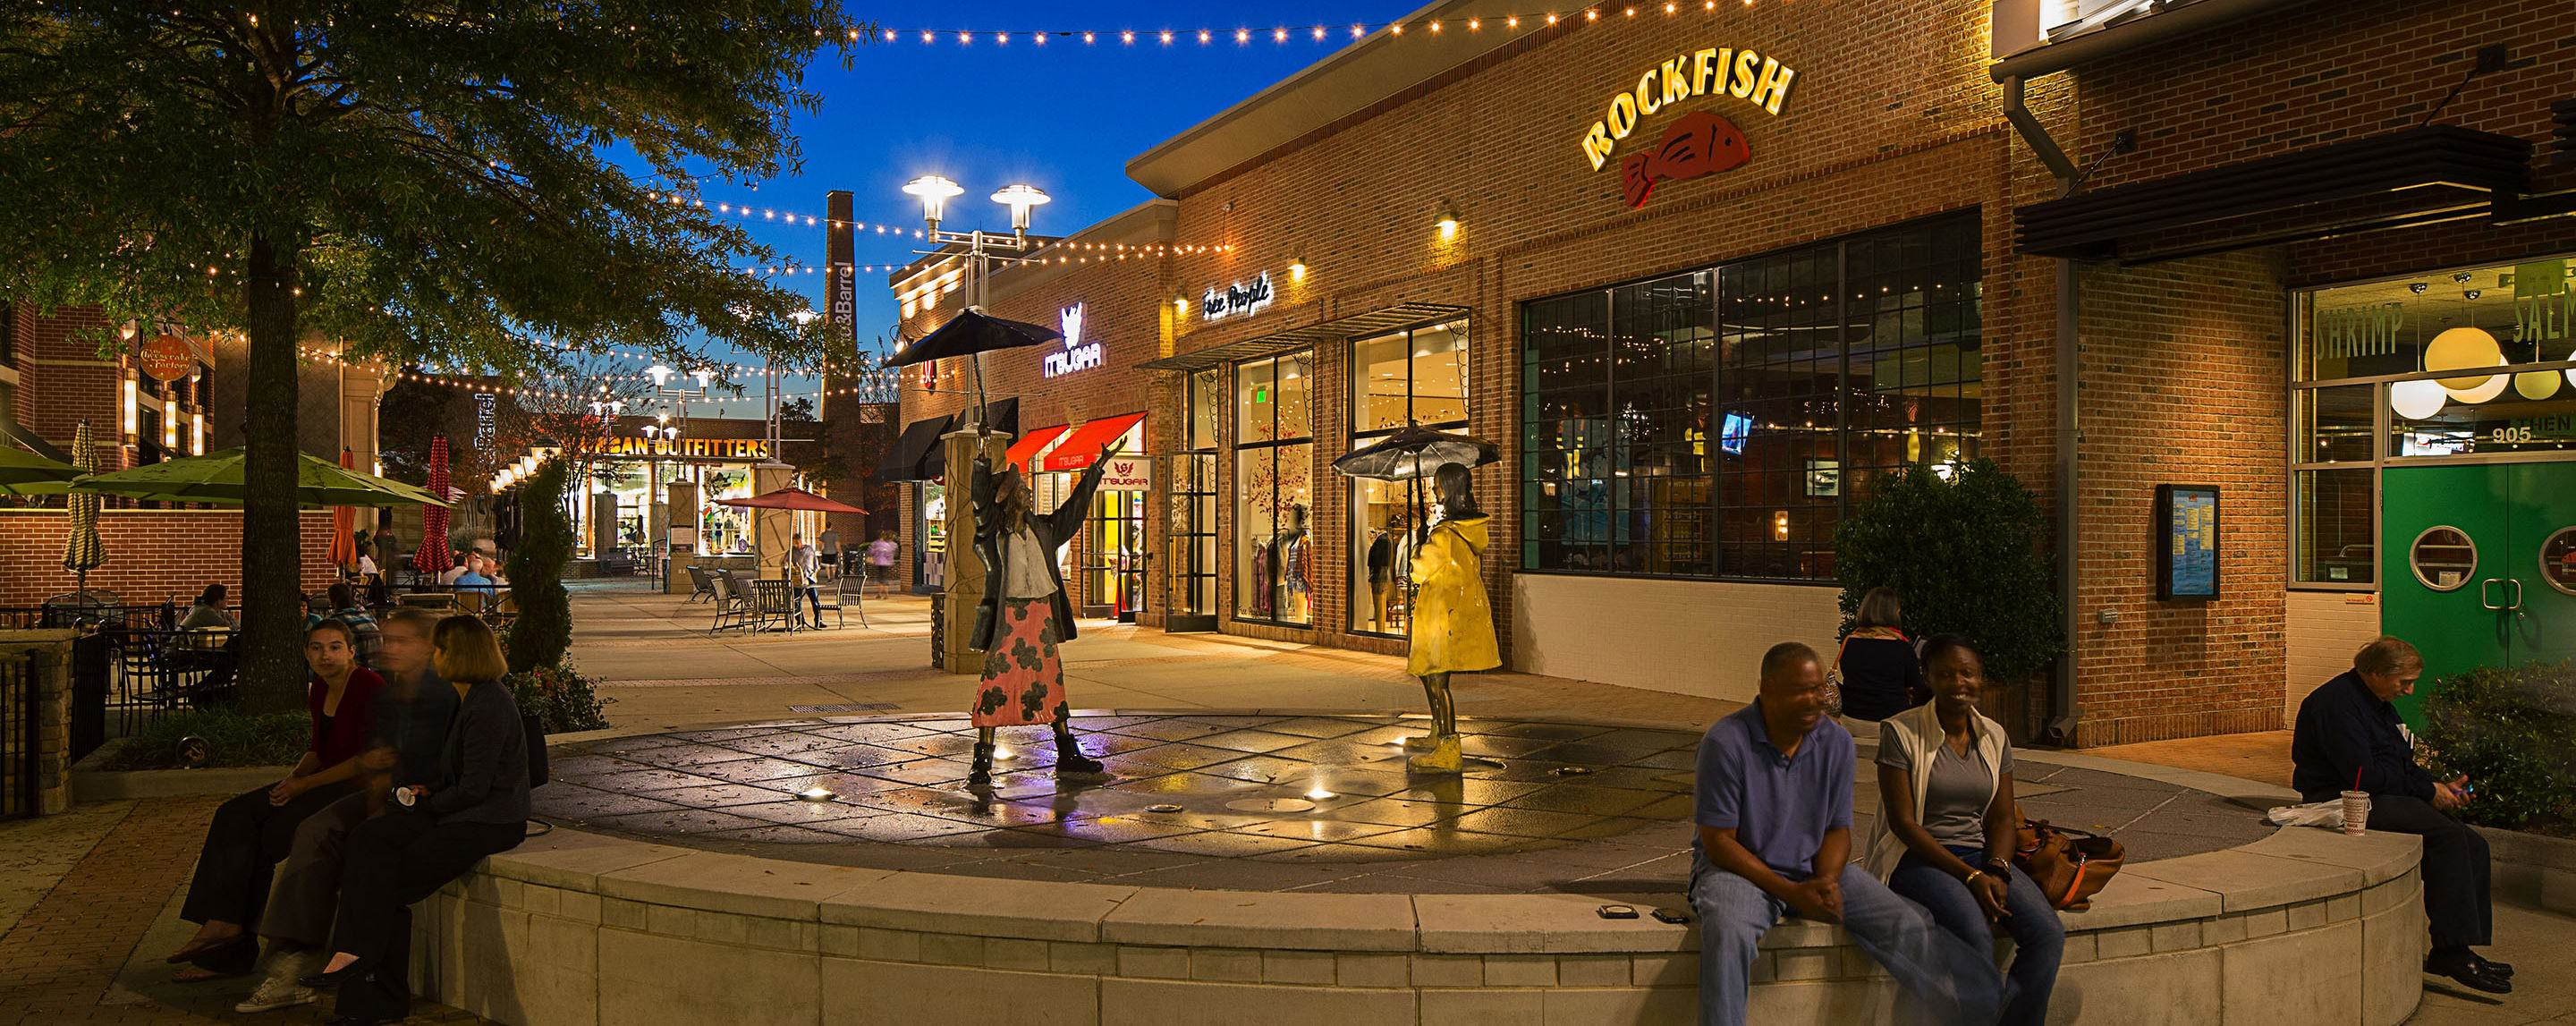 Shoppers take a break at The Streets at Southpoint  during dusk sitting on an outdoor decorative fountain.